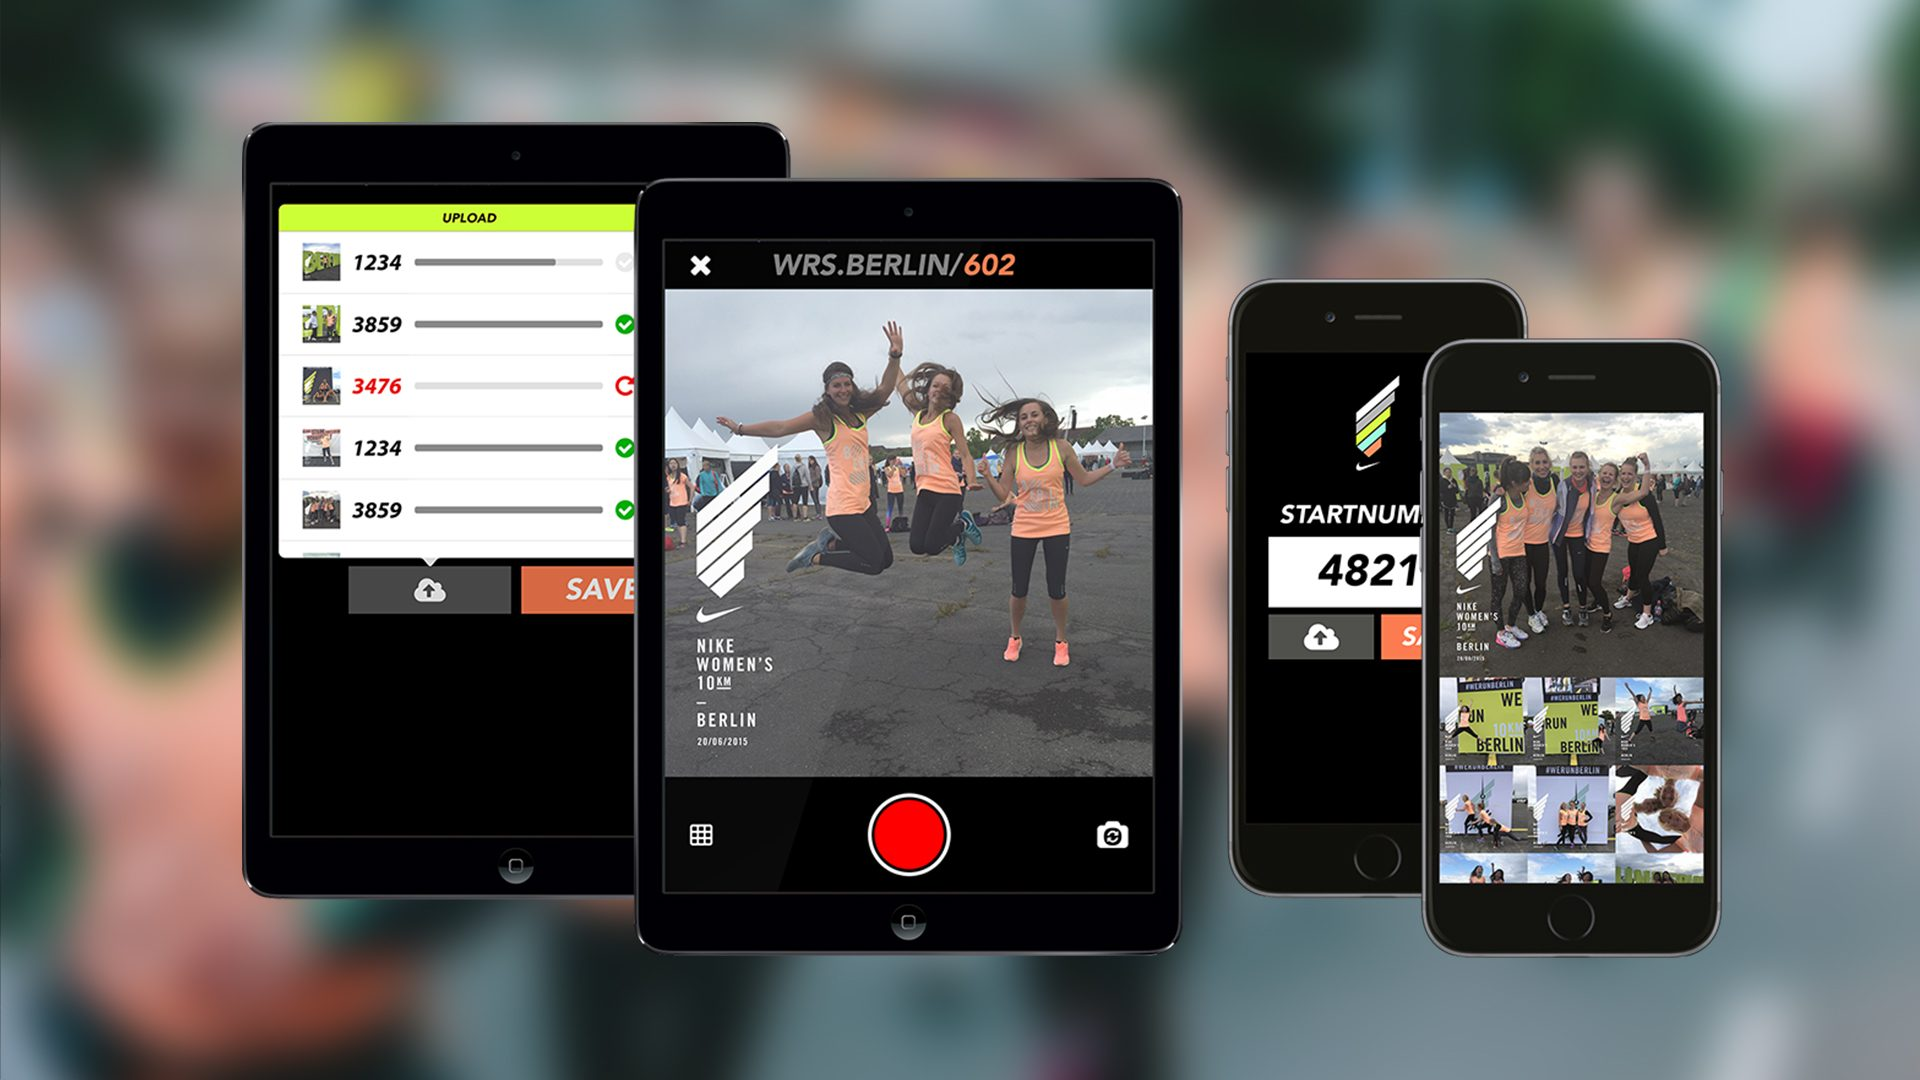 The capturing app for iOS